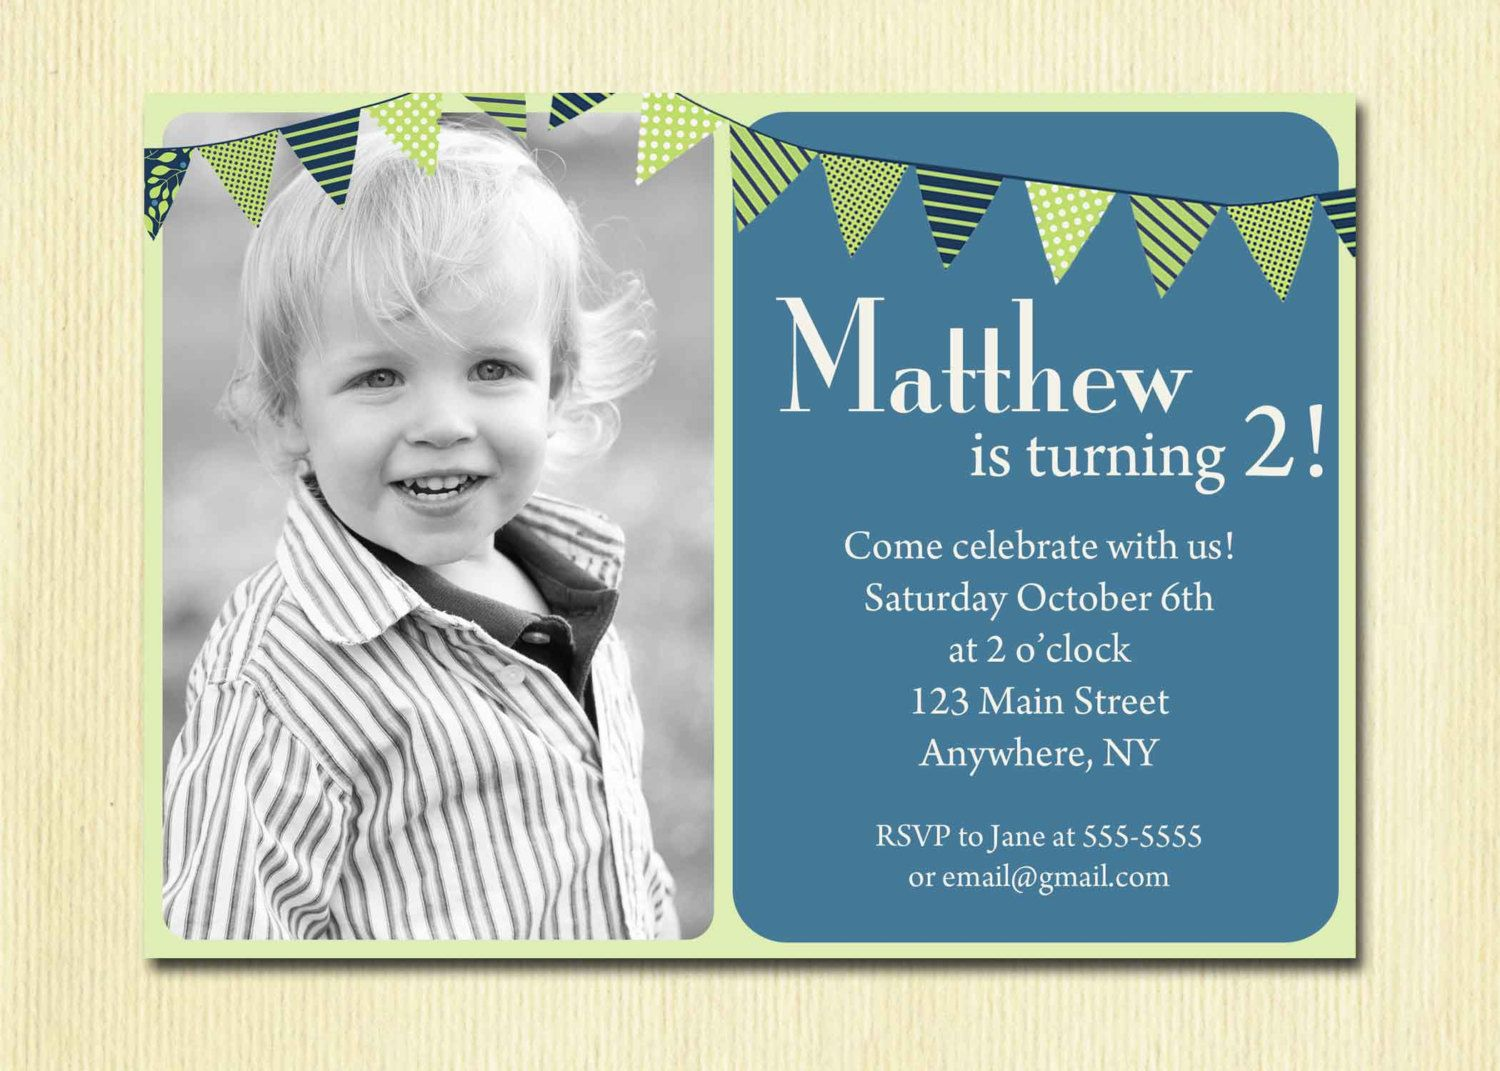 4 year old birthday invitation sayings ; 83d38efeabb30d039447f5322de0c7e1